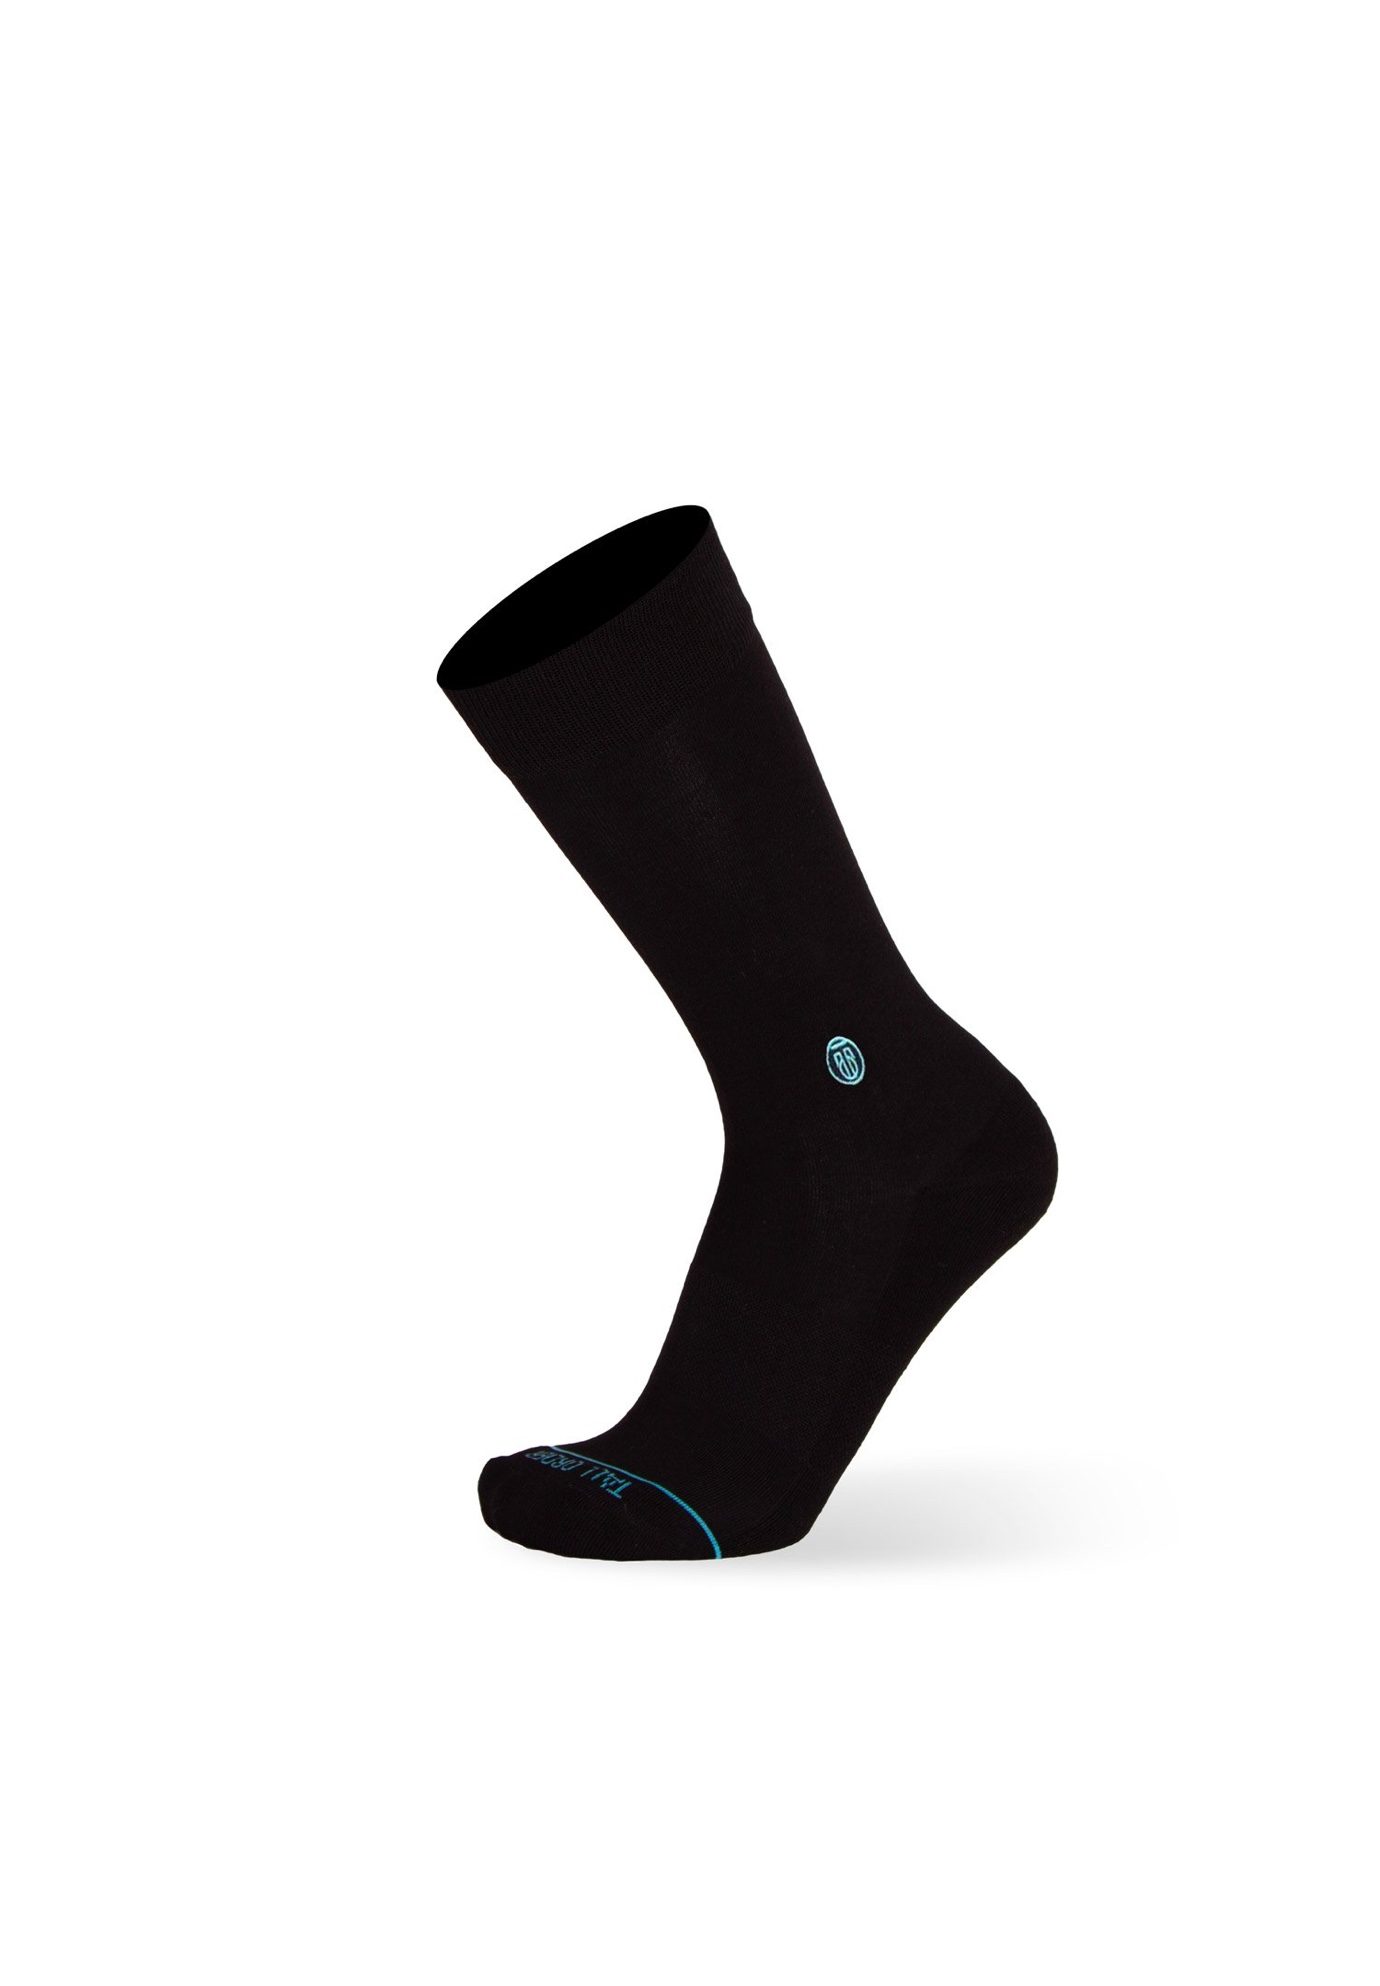 The Solid Black Socks,